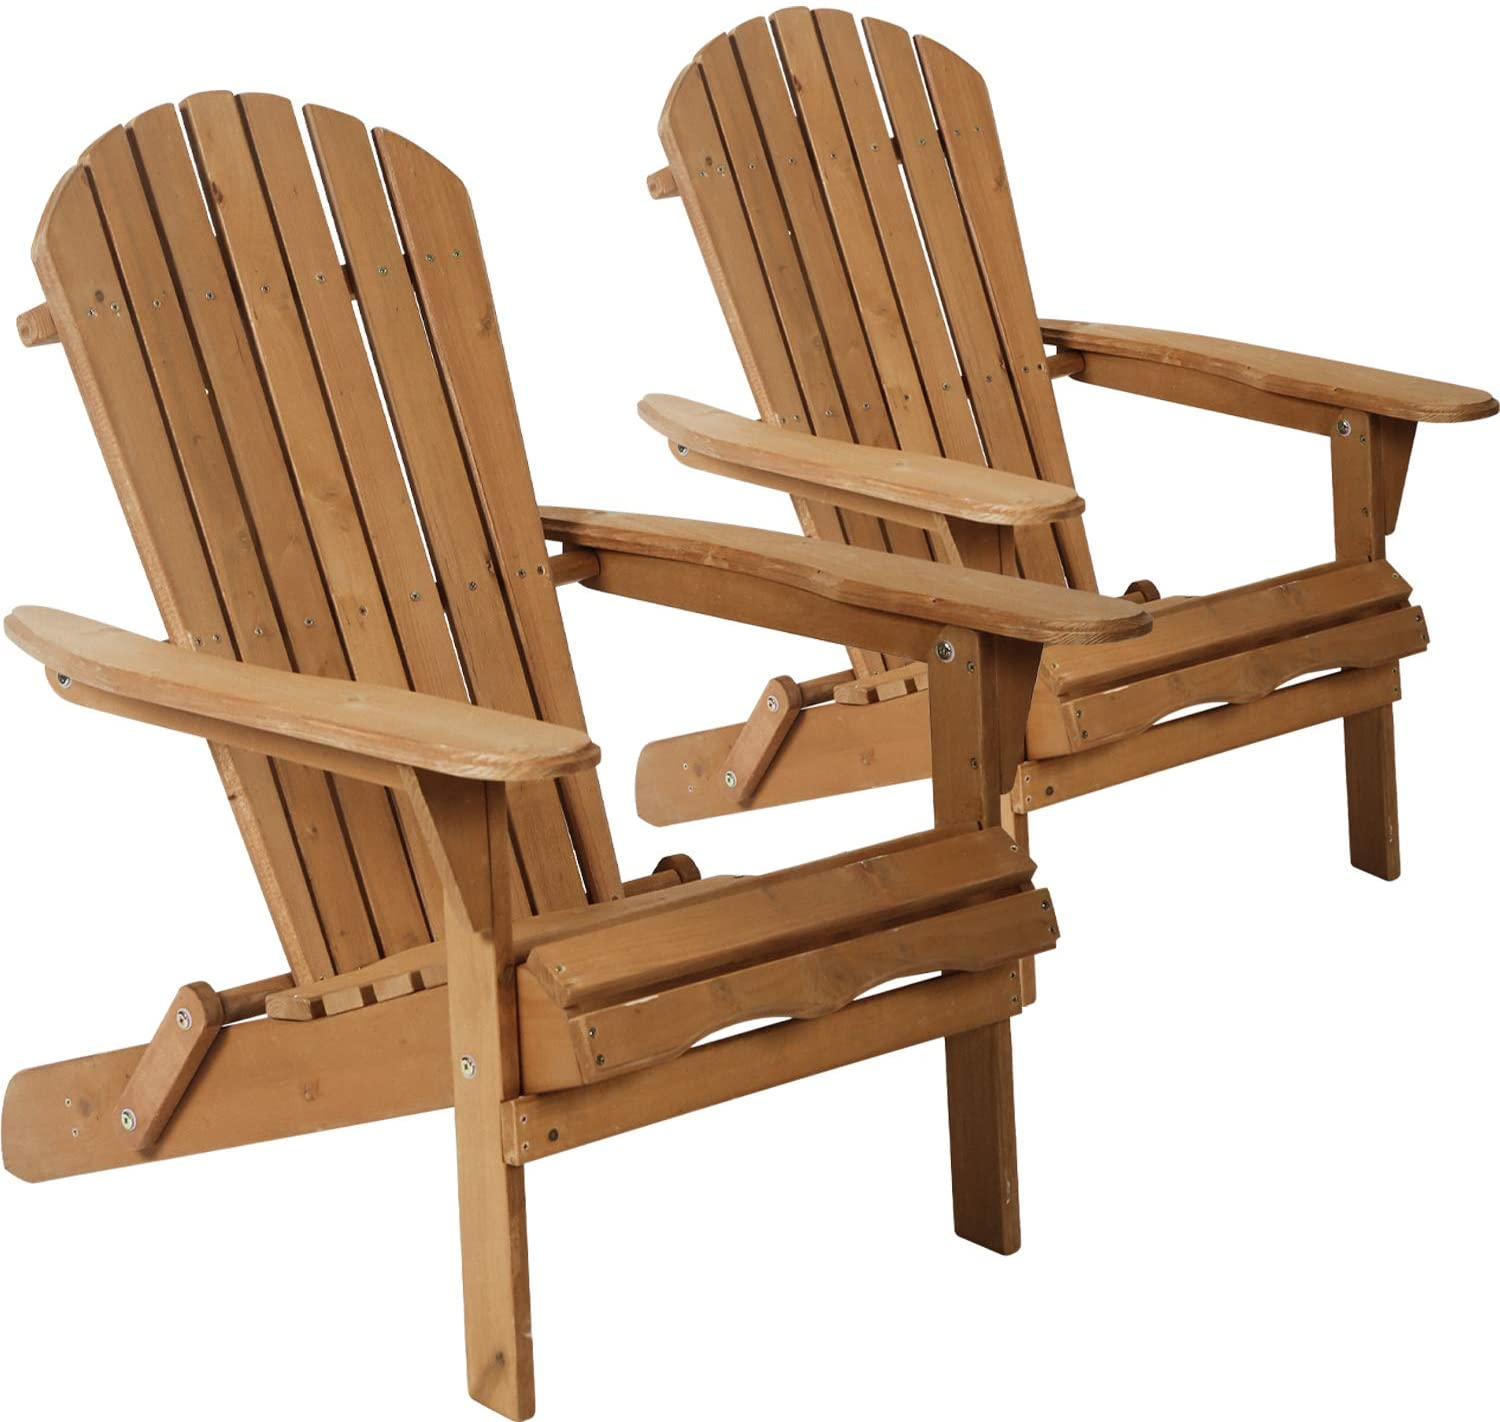 adirondack chair patio chairs folding adirondack chair lawn chair outdoor chairs set of 2 fire pit chairs patio seatingwood chairs for adults yard